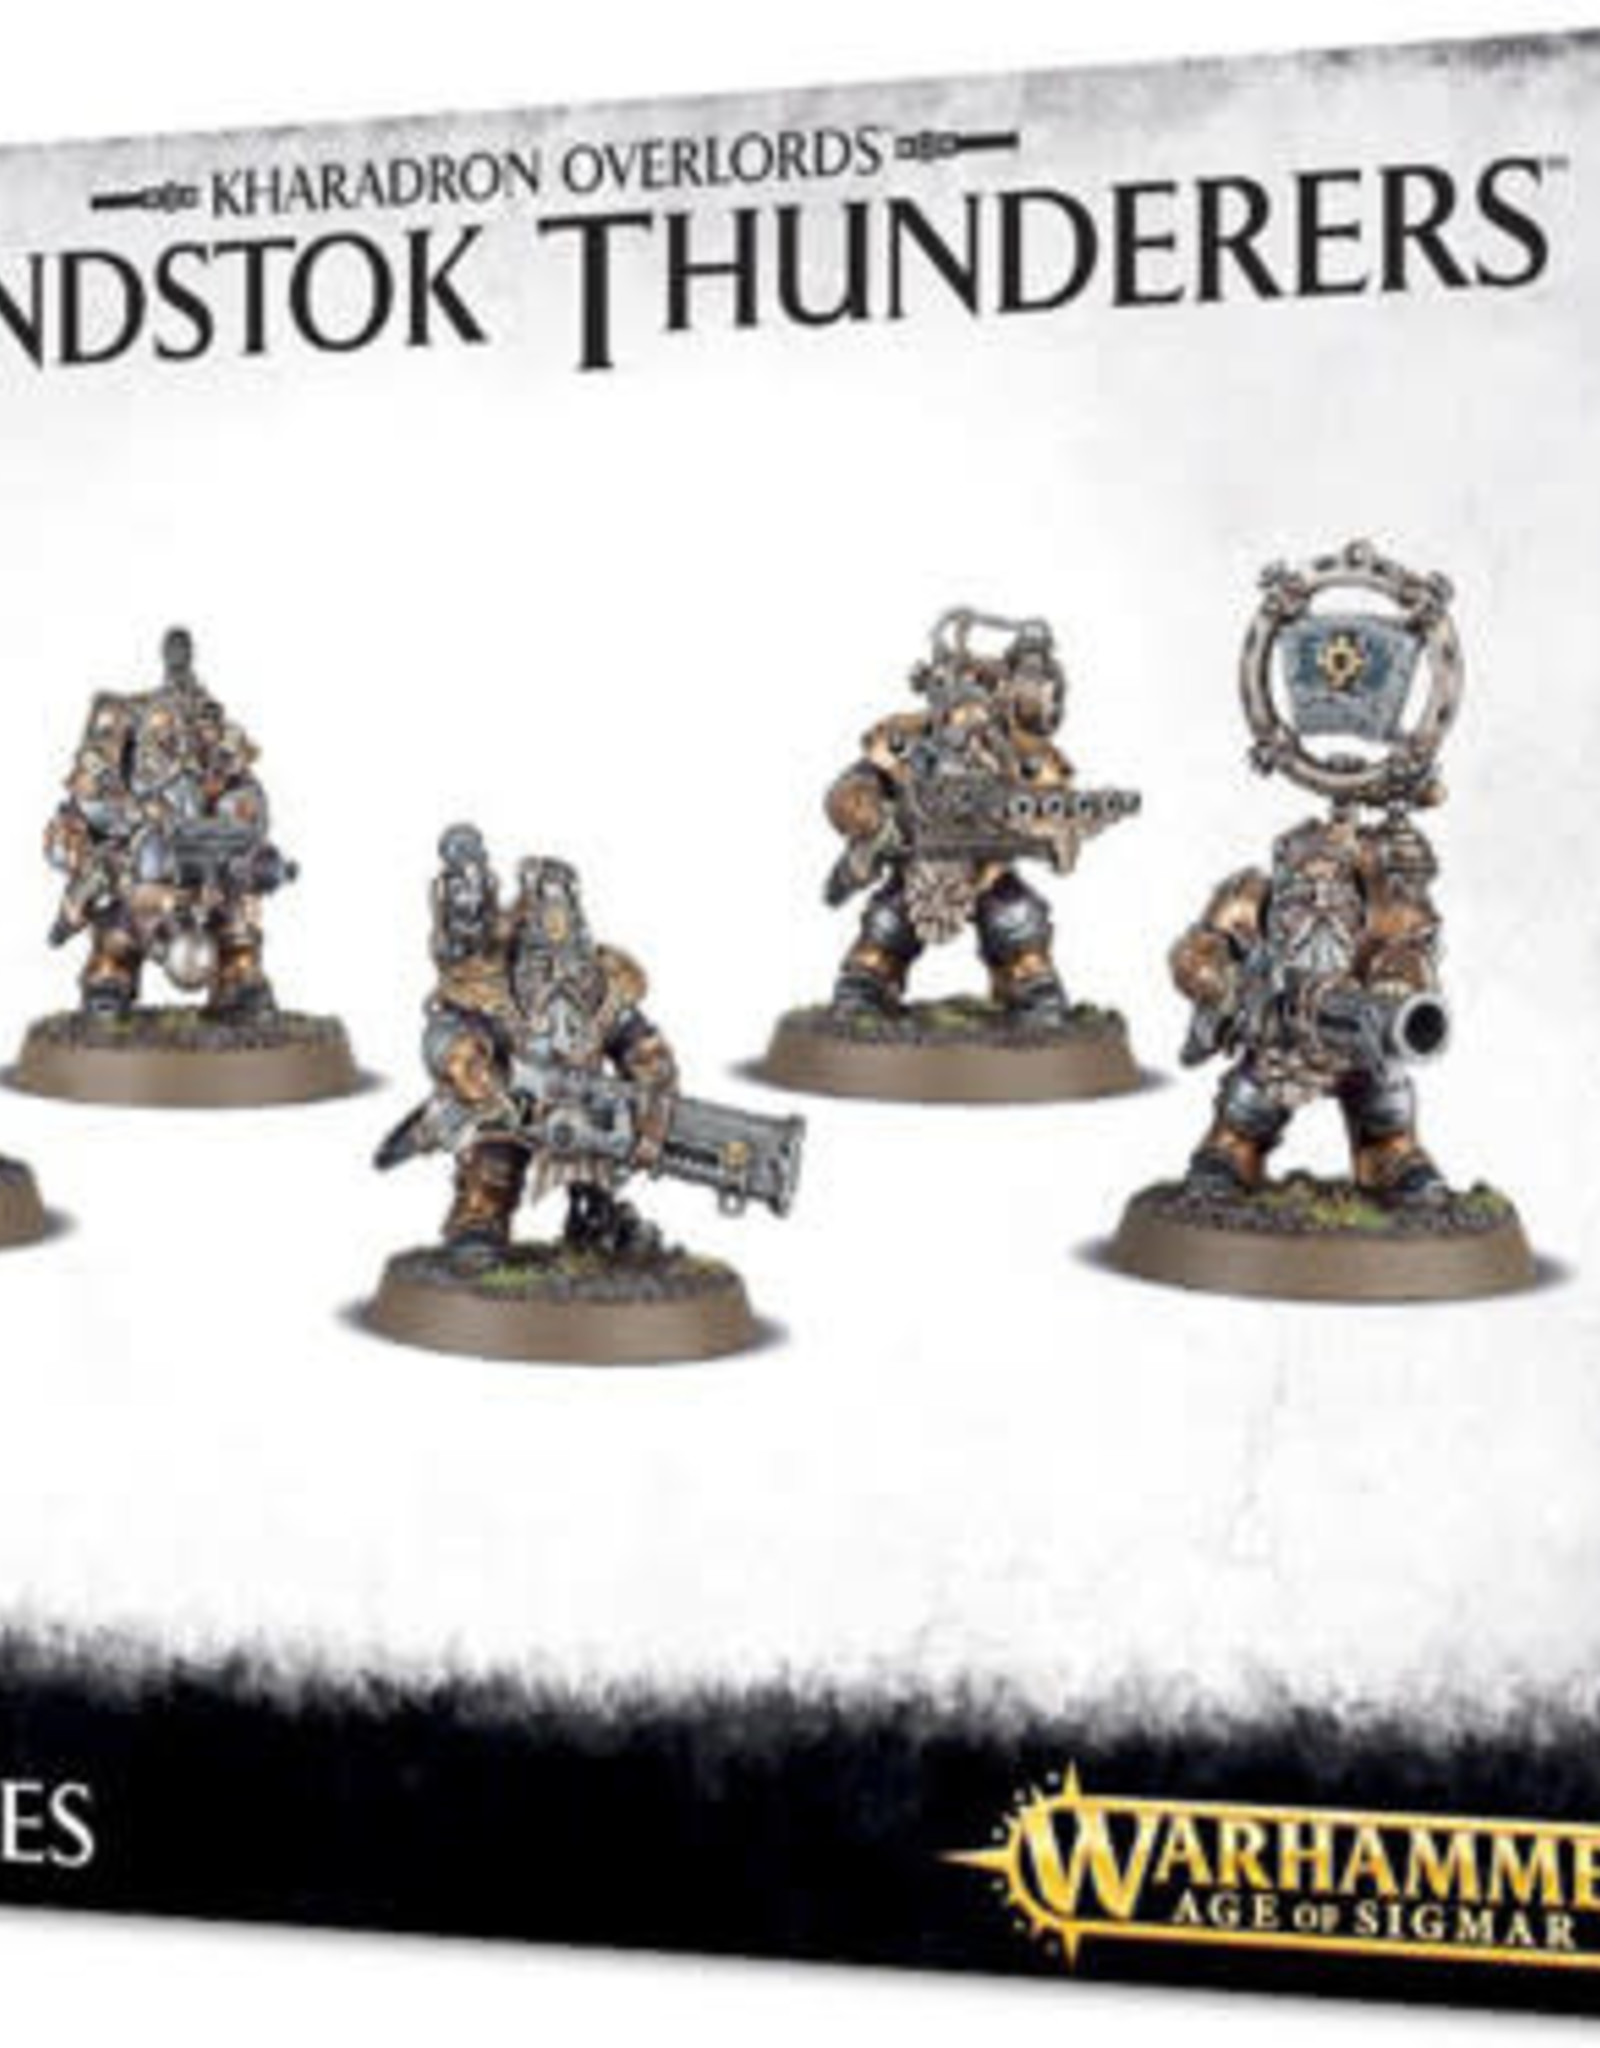 Age of Sigmar Kharadron Overlords Grundstock Thunderers